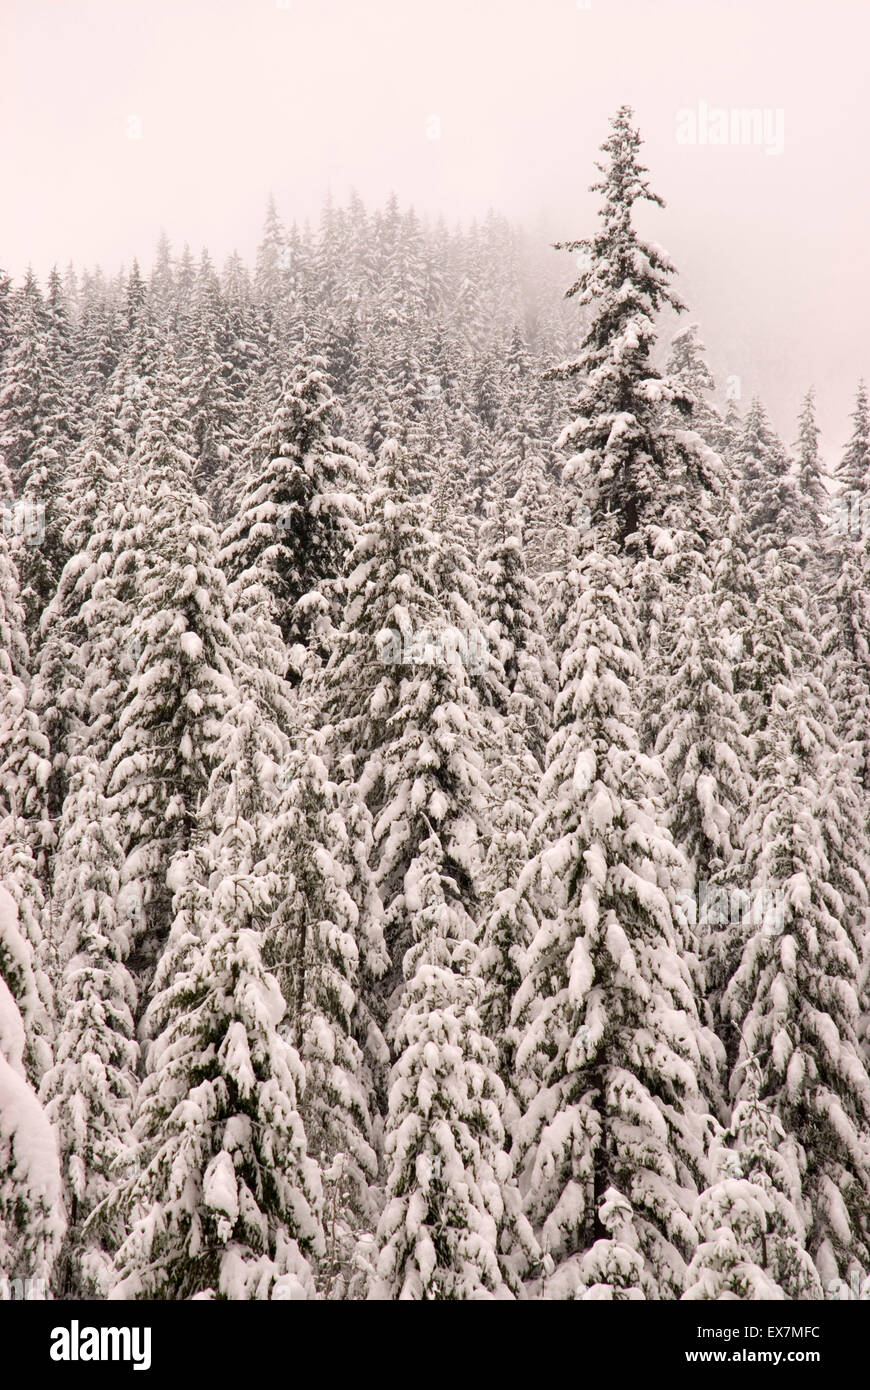 Winter forest near Flattop Sno-park, Gifford Pinchot National Forest, Washington - Stock Image